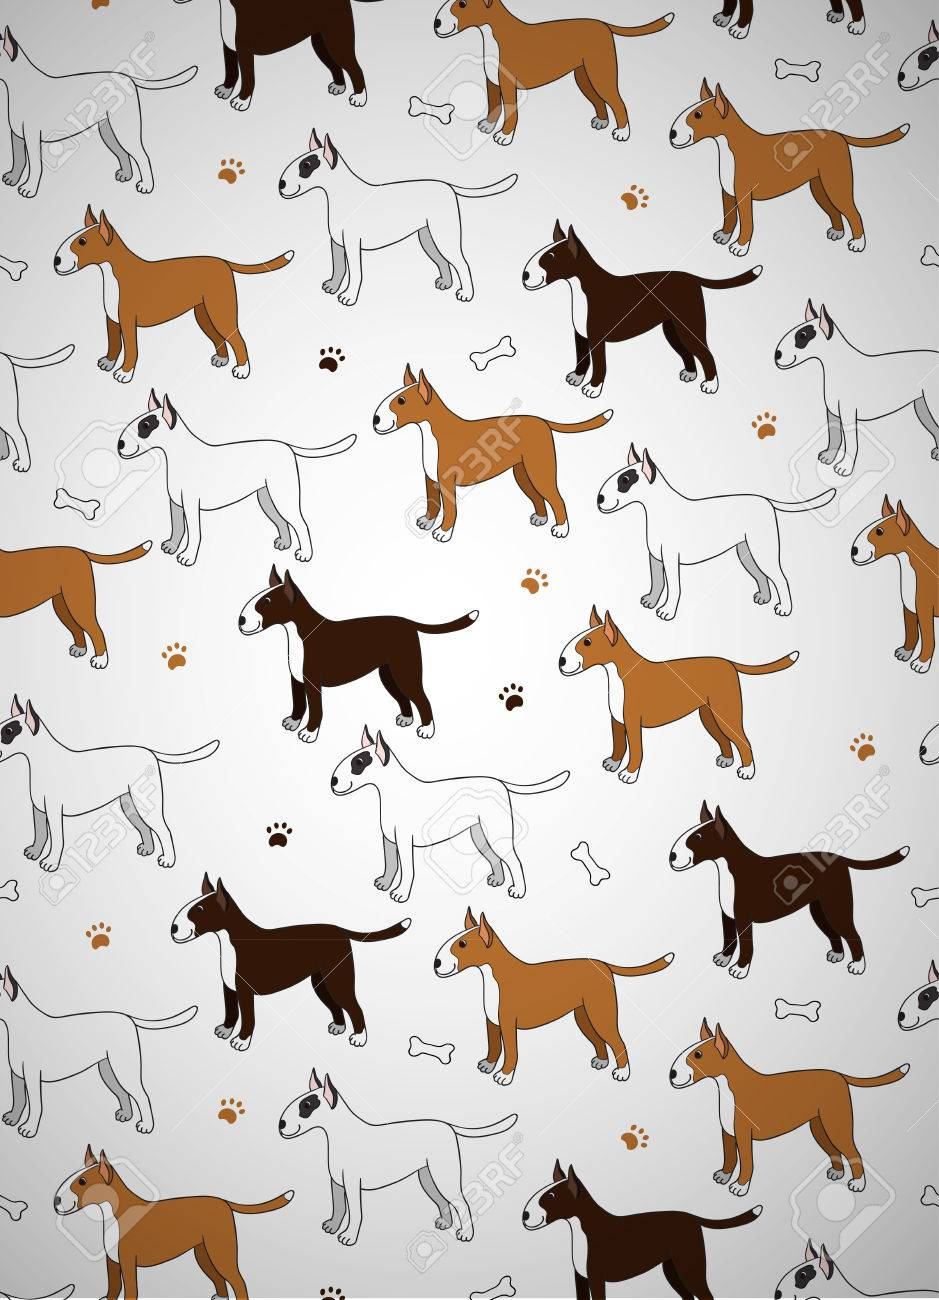 Awesome Greeting Card With Cute Cartoon Dogs Breed Bullterier